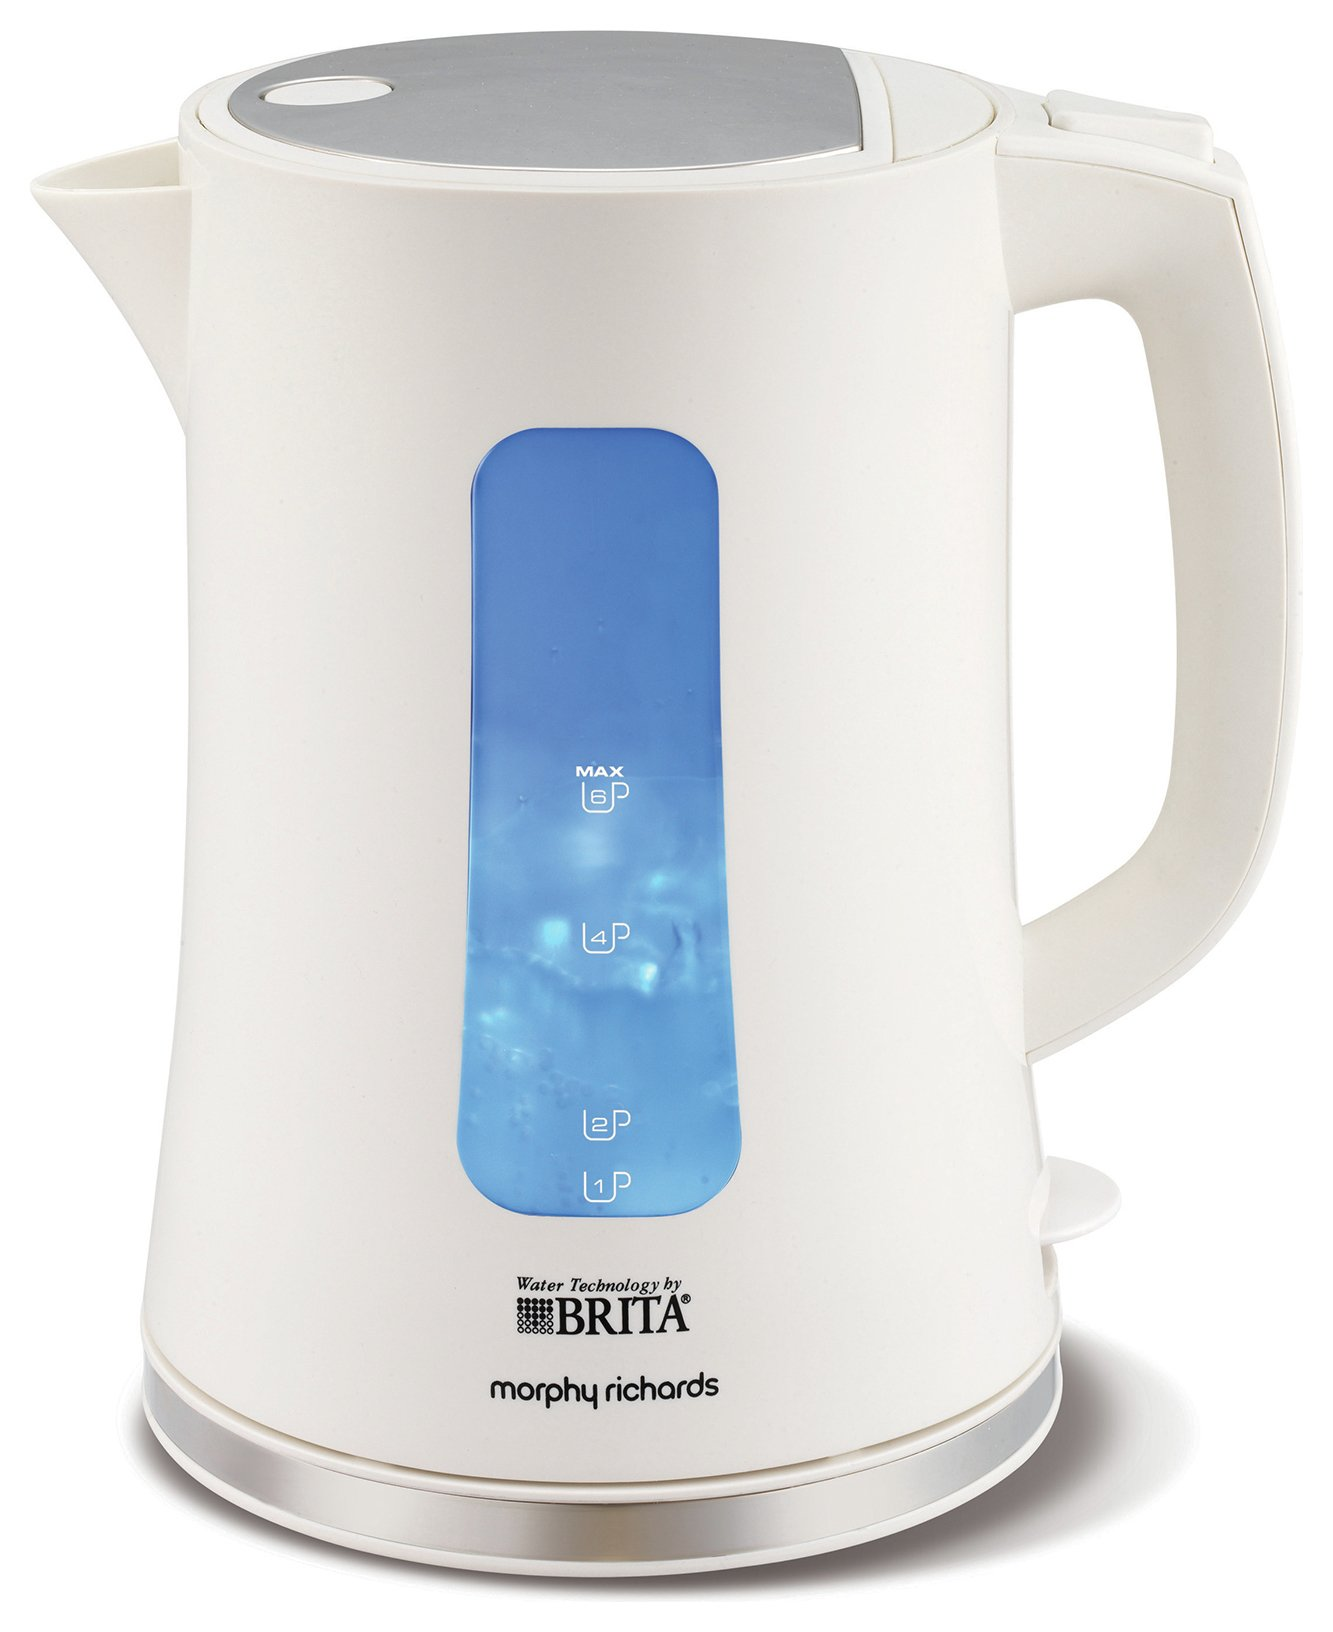 Morphy Richards Brita Accents Kettle - White